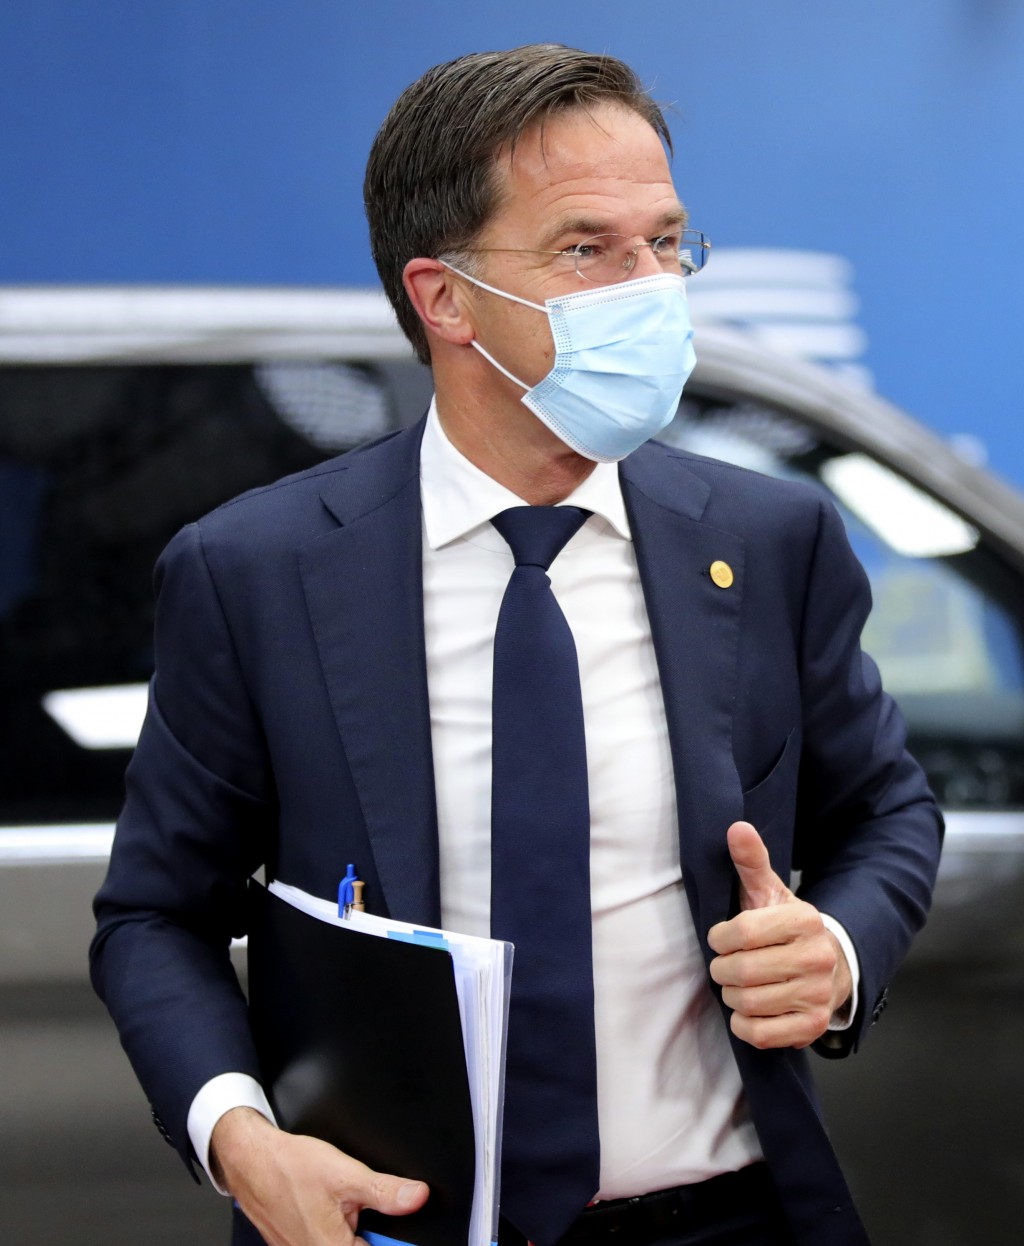 FILE - In this file photo dated Friday, Oct. 2, 2020, Dutch Prime Minister Mark Rutte arrives for an EU summit at the European Council building in Bru...